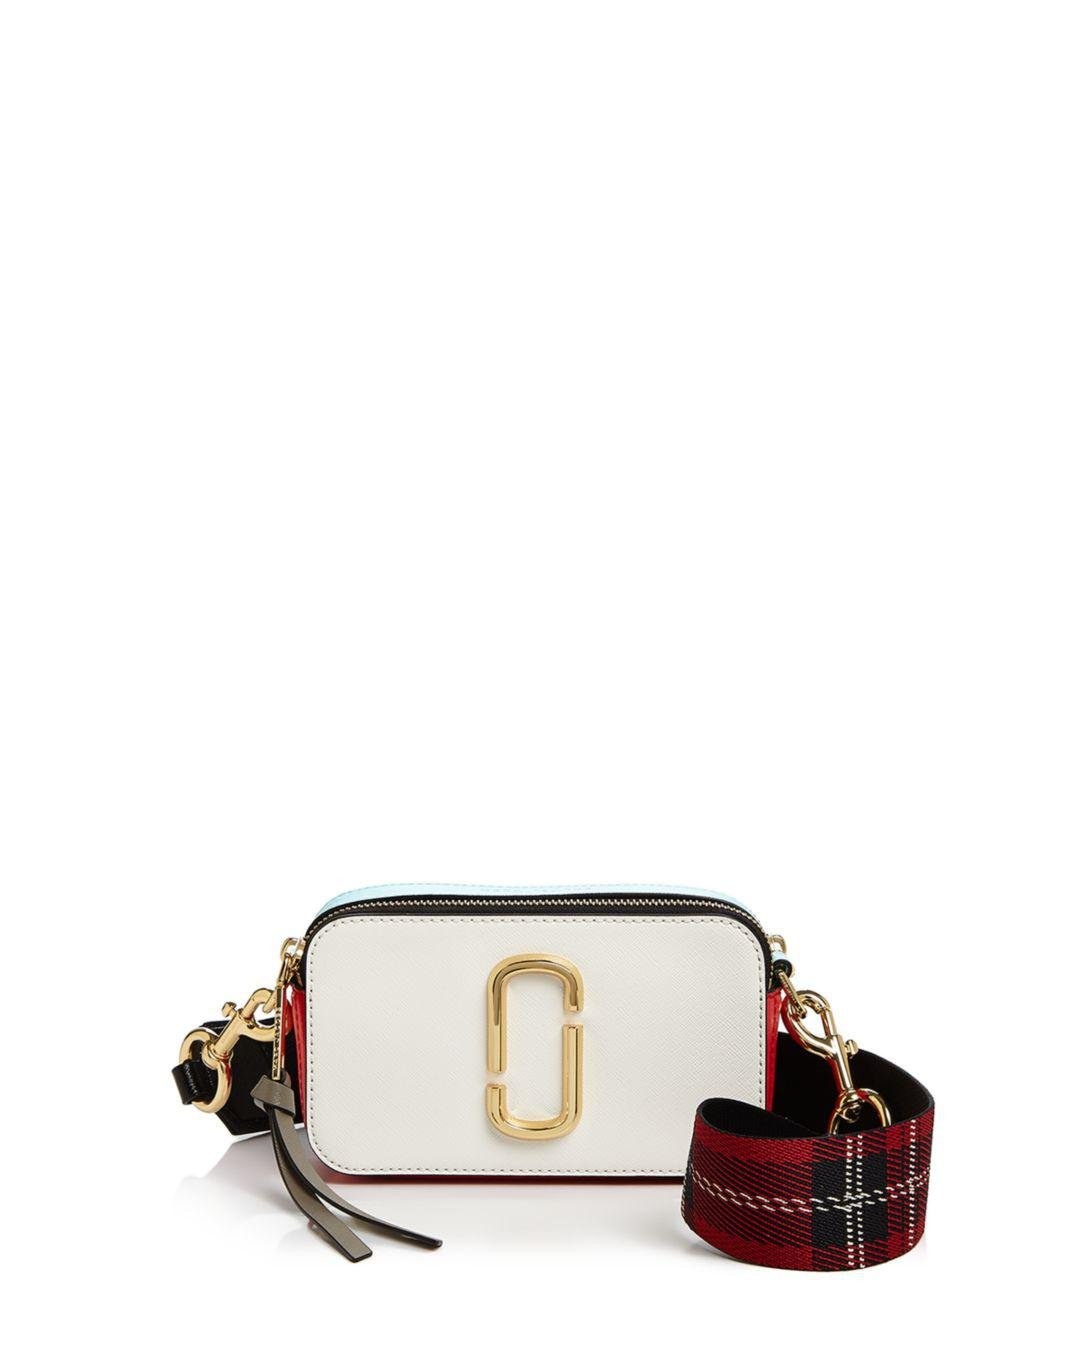 9bc9e2f12359 Lyst - Marc Jacobs Snapshot Leather Camera Bag - Save 20%